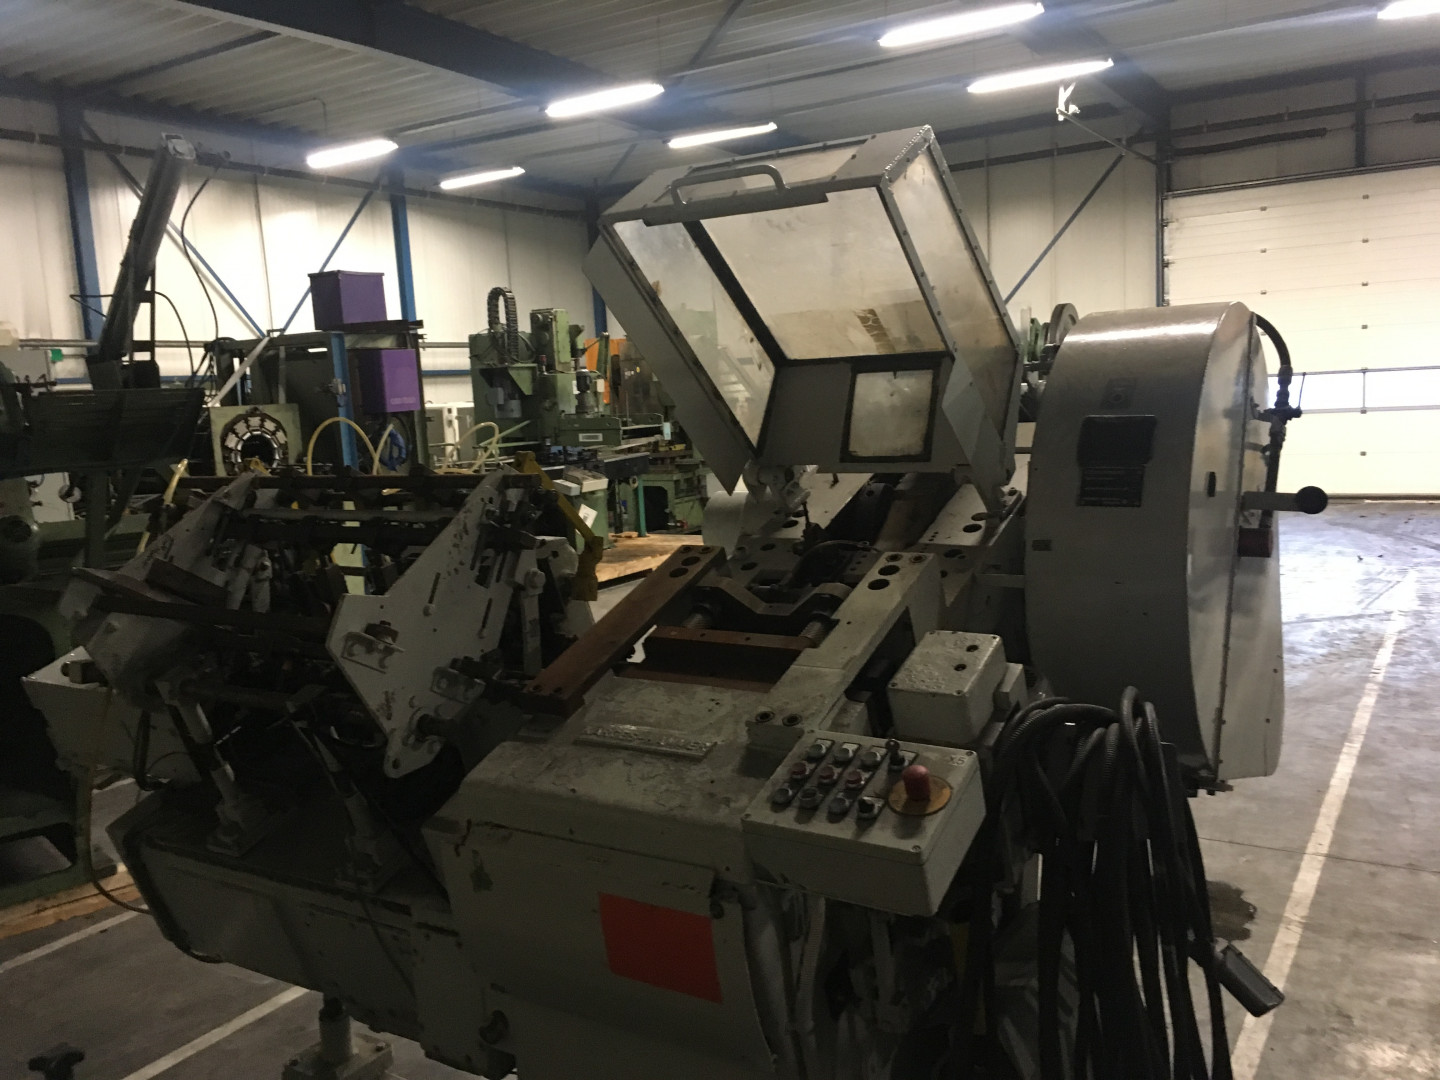 Karges Hammer ASts 230 stripfeed press